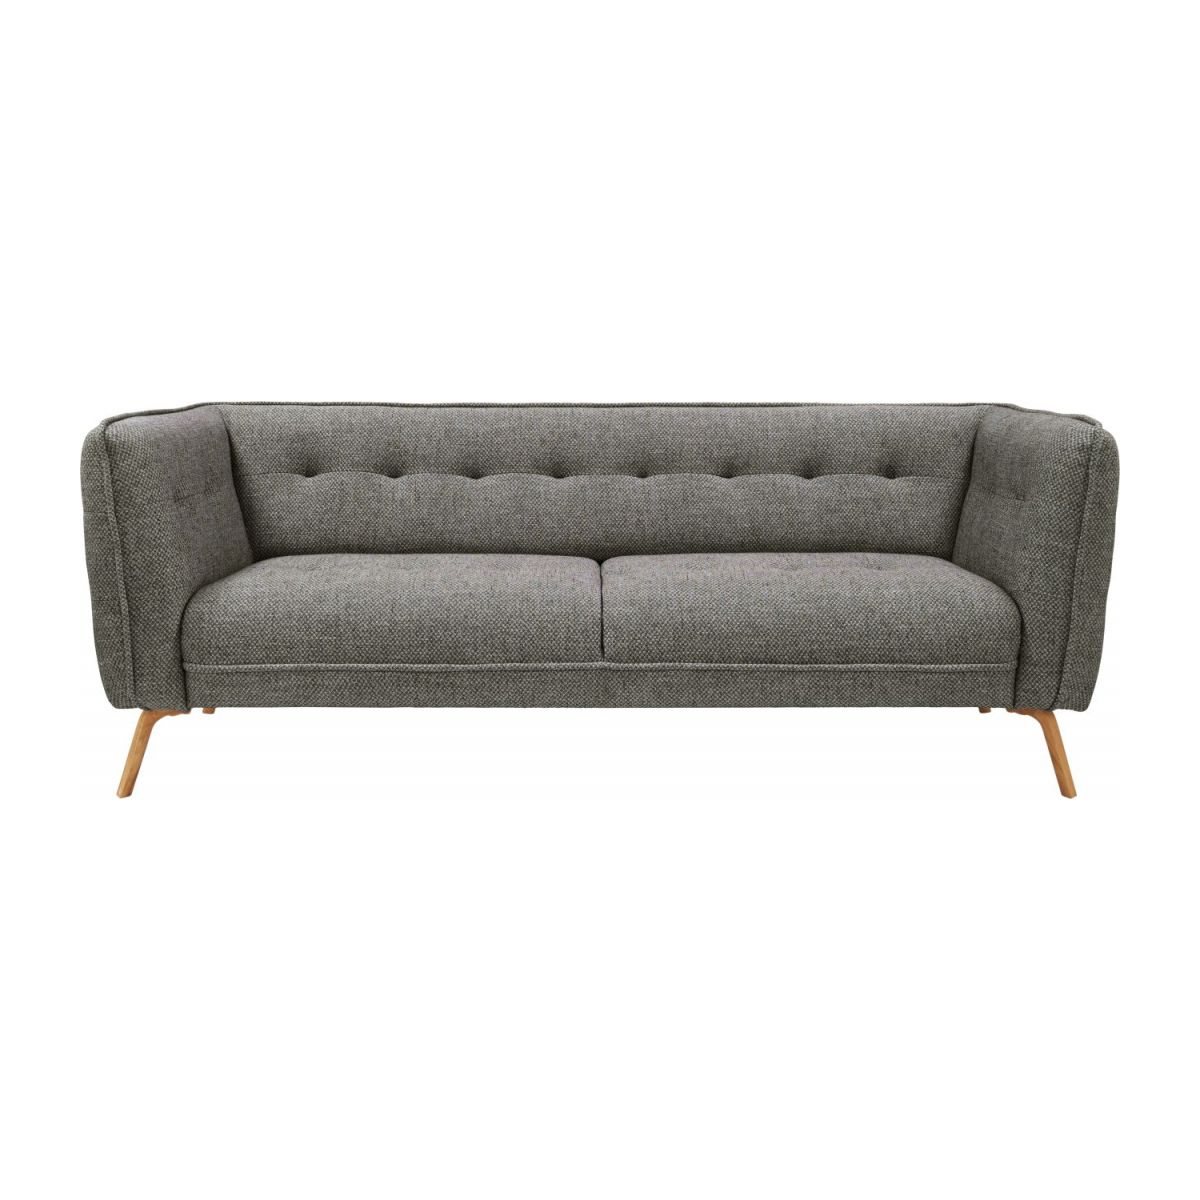 3 seater sofa in Bellagio fabric, night black and oak legs n°3